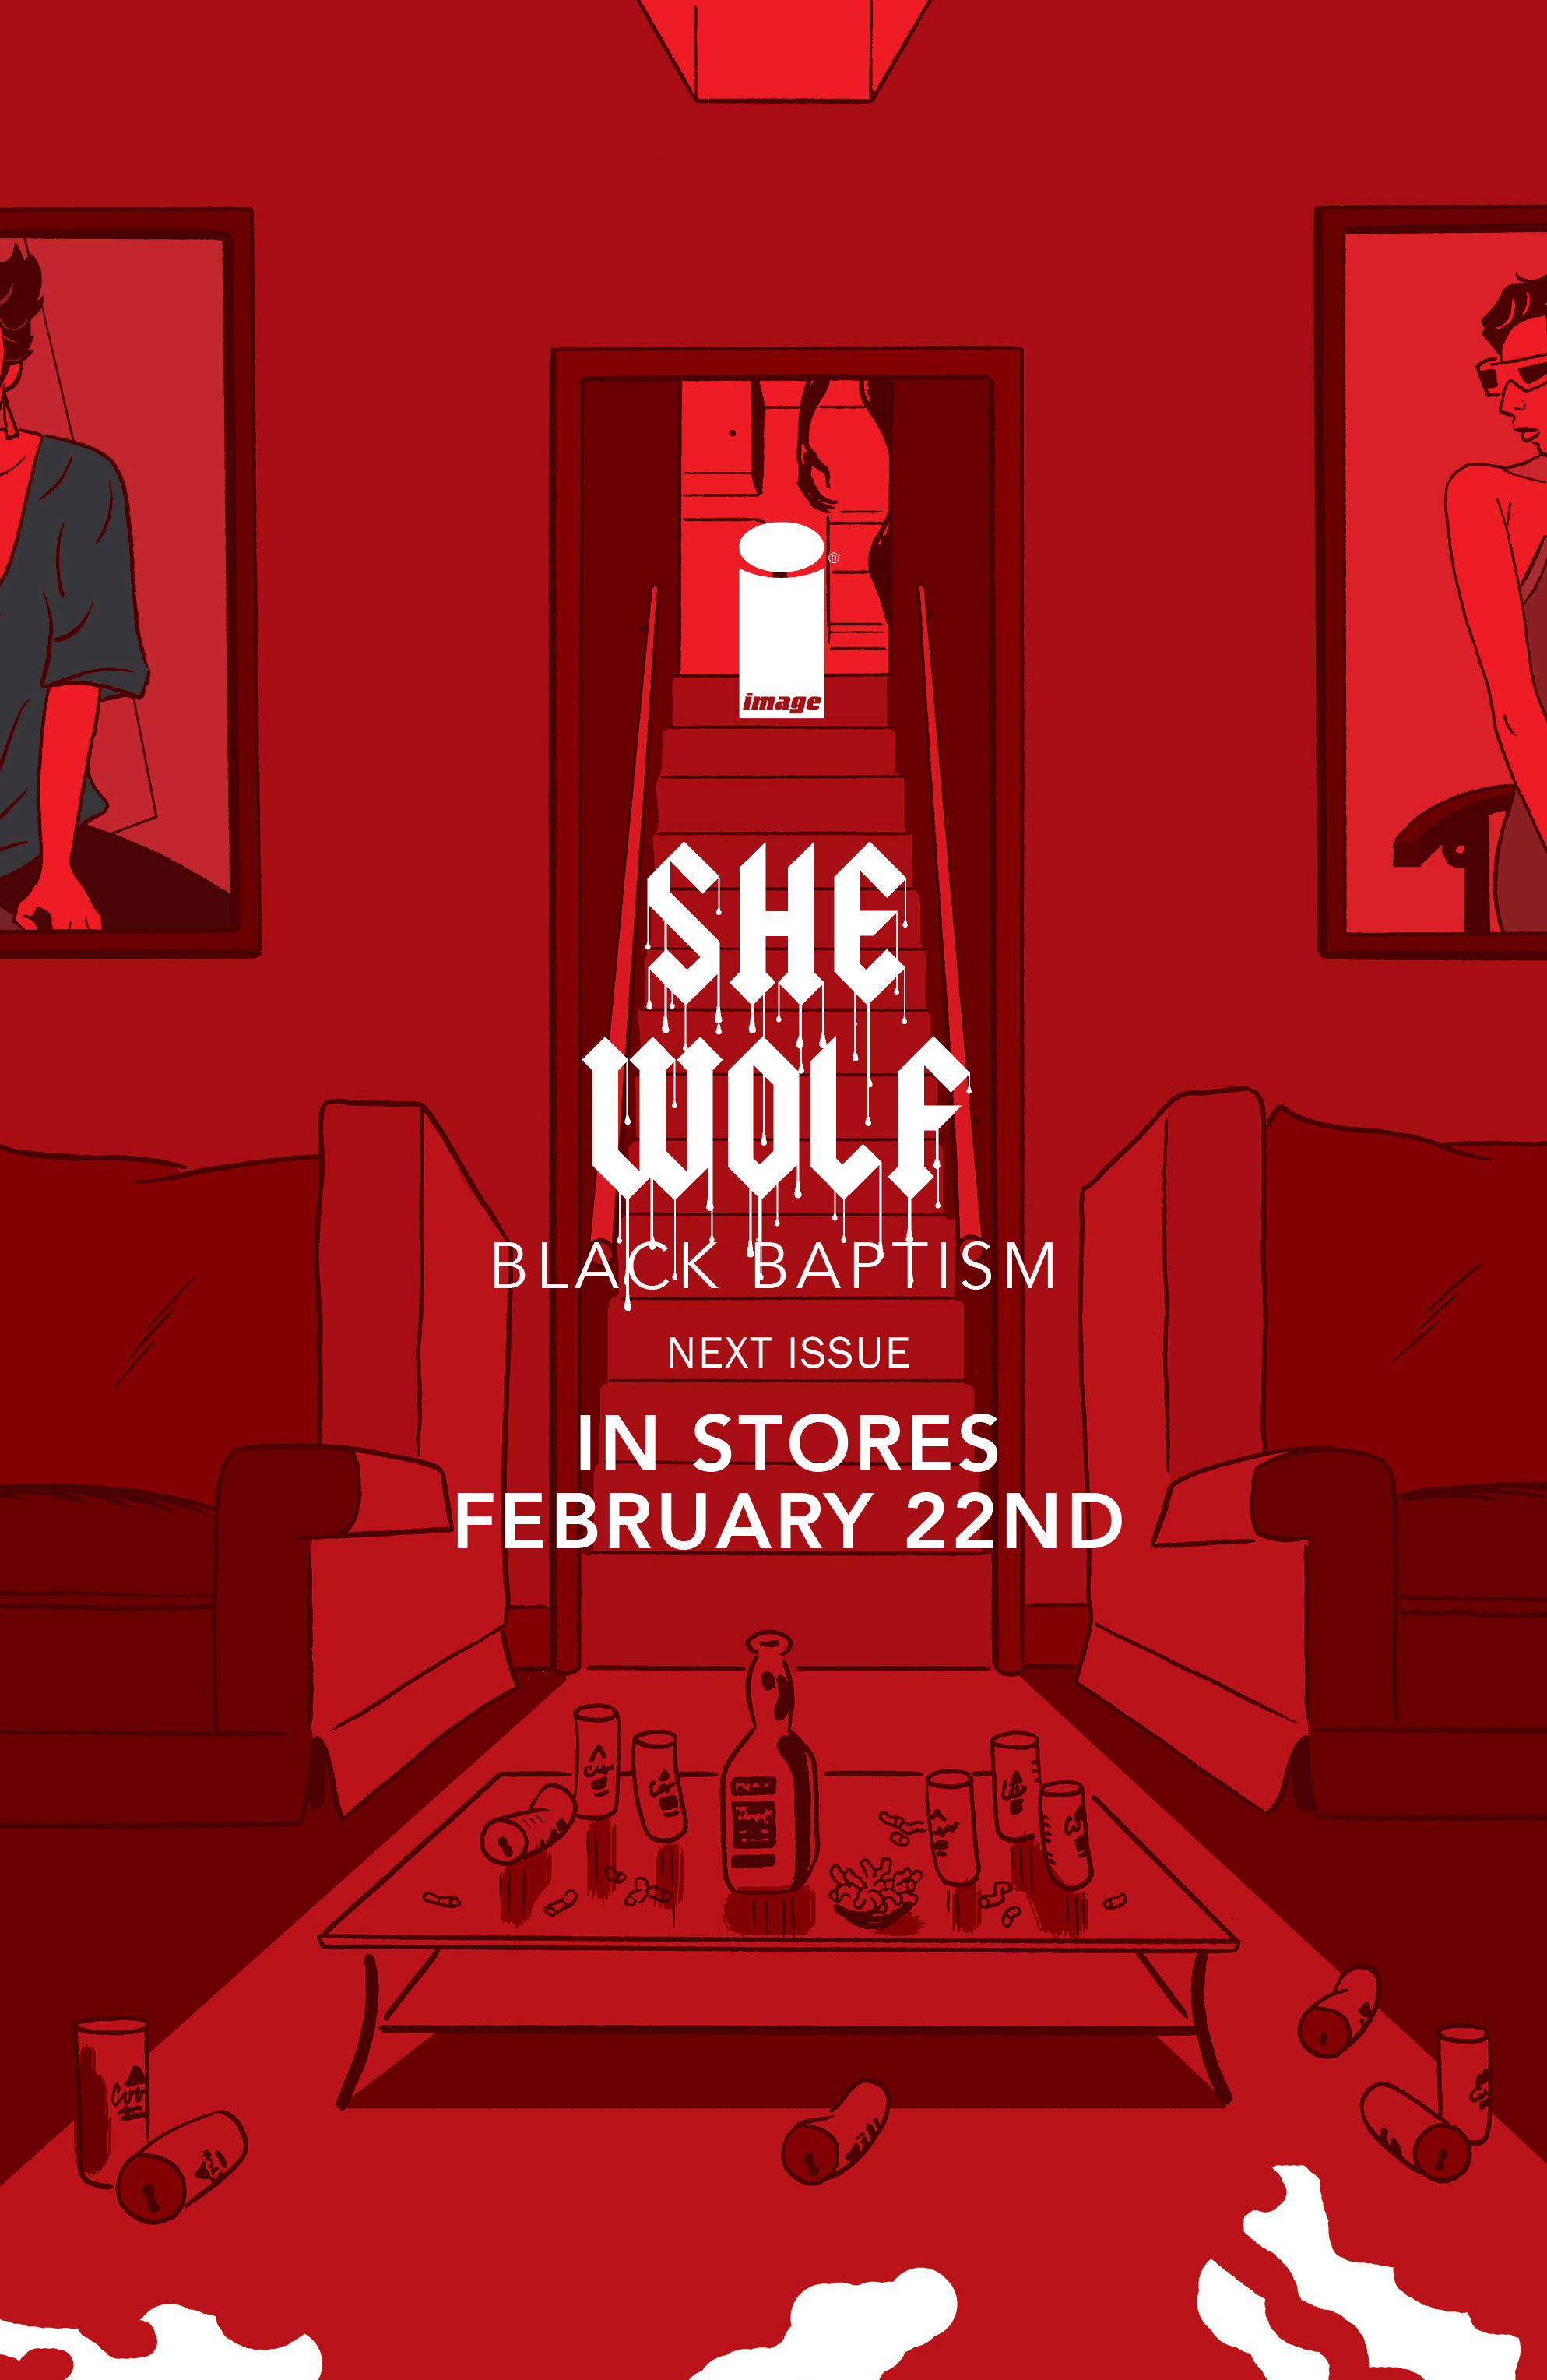 Read online She Wolf comic -  Issue #5 - 22